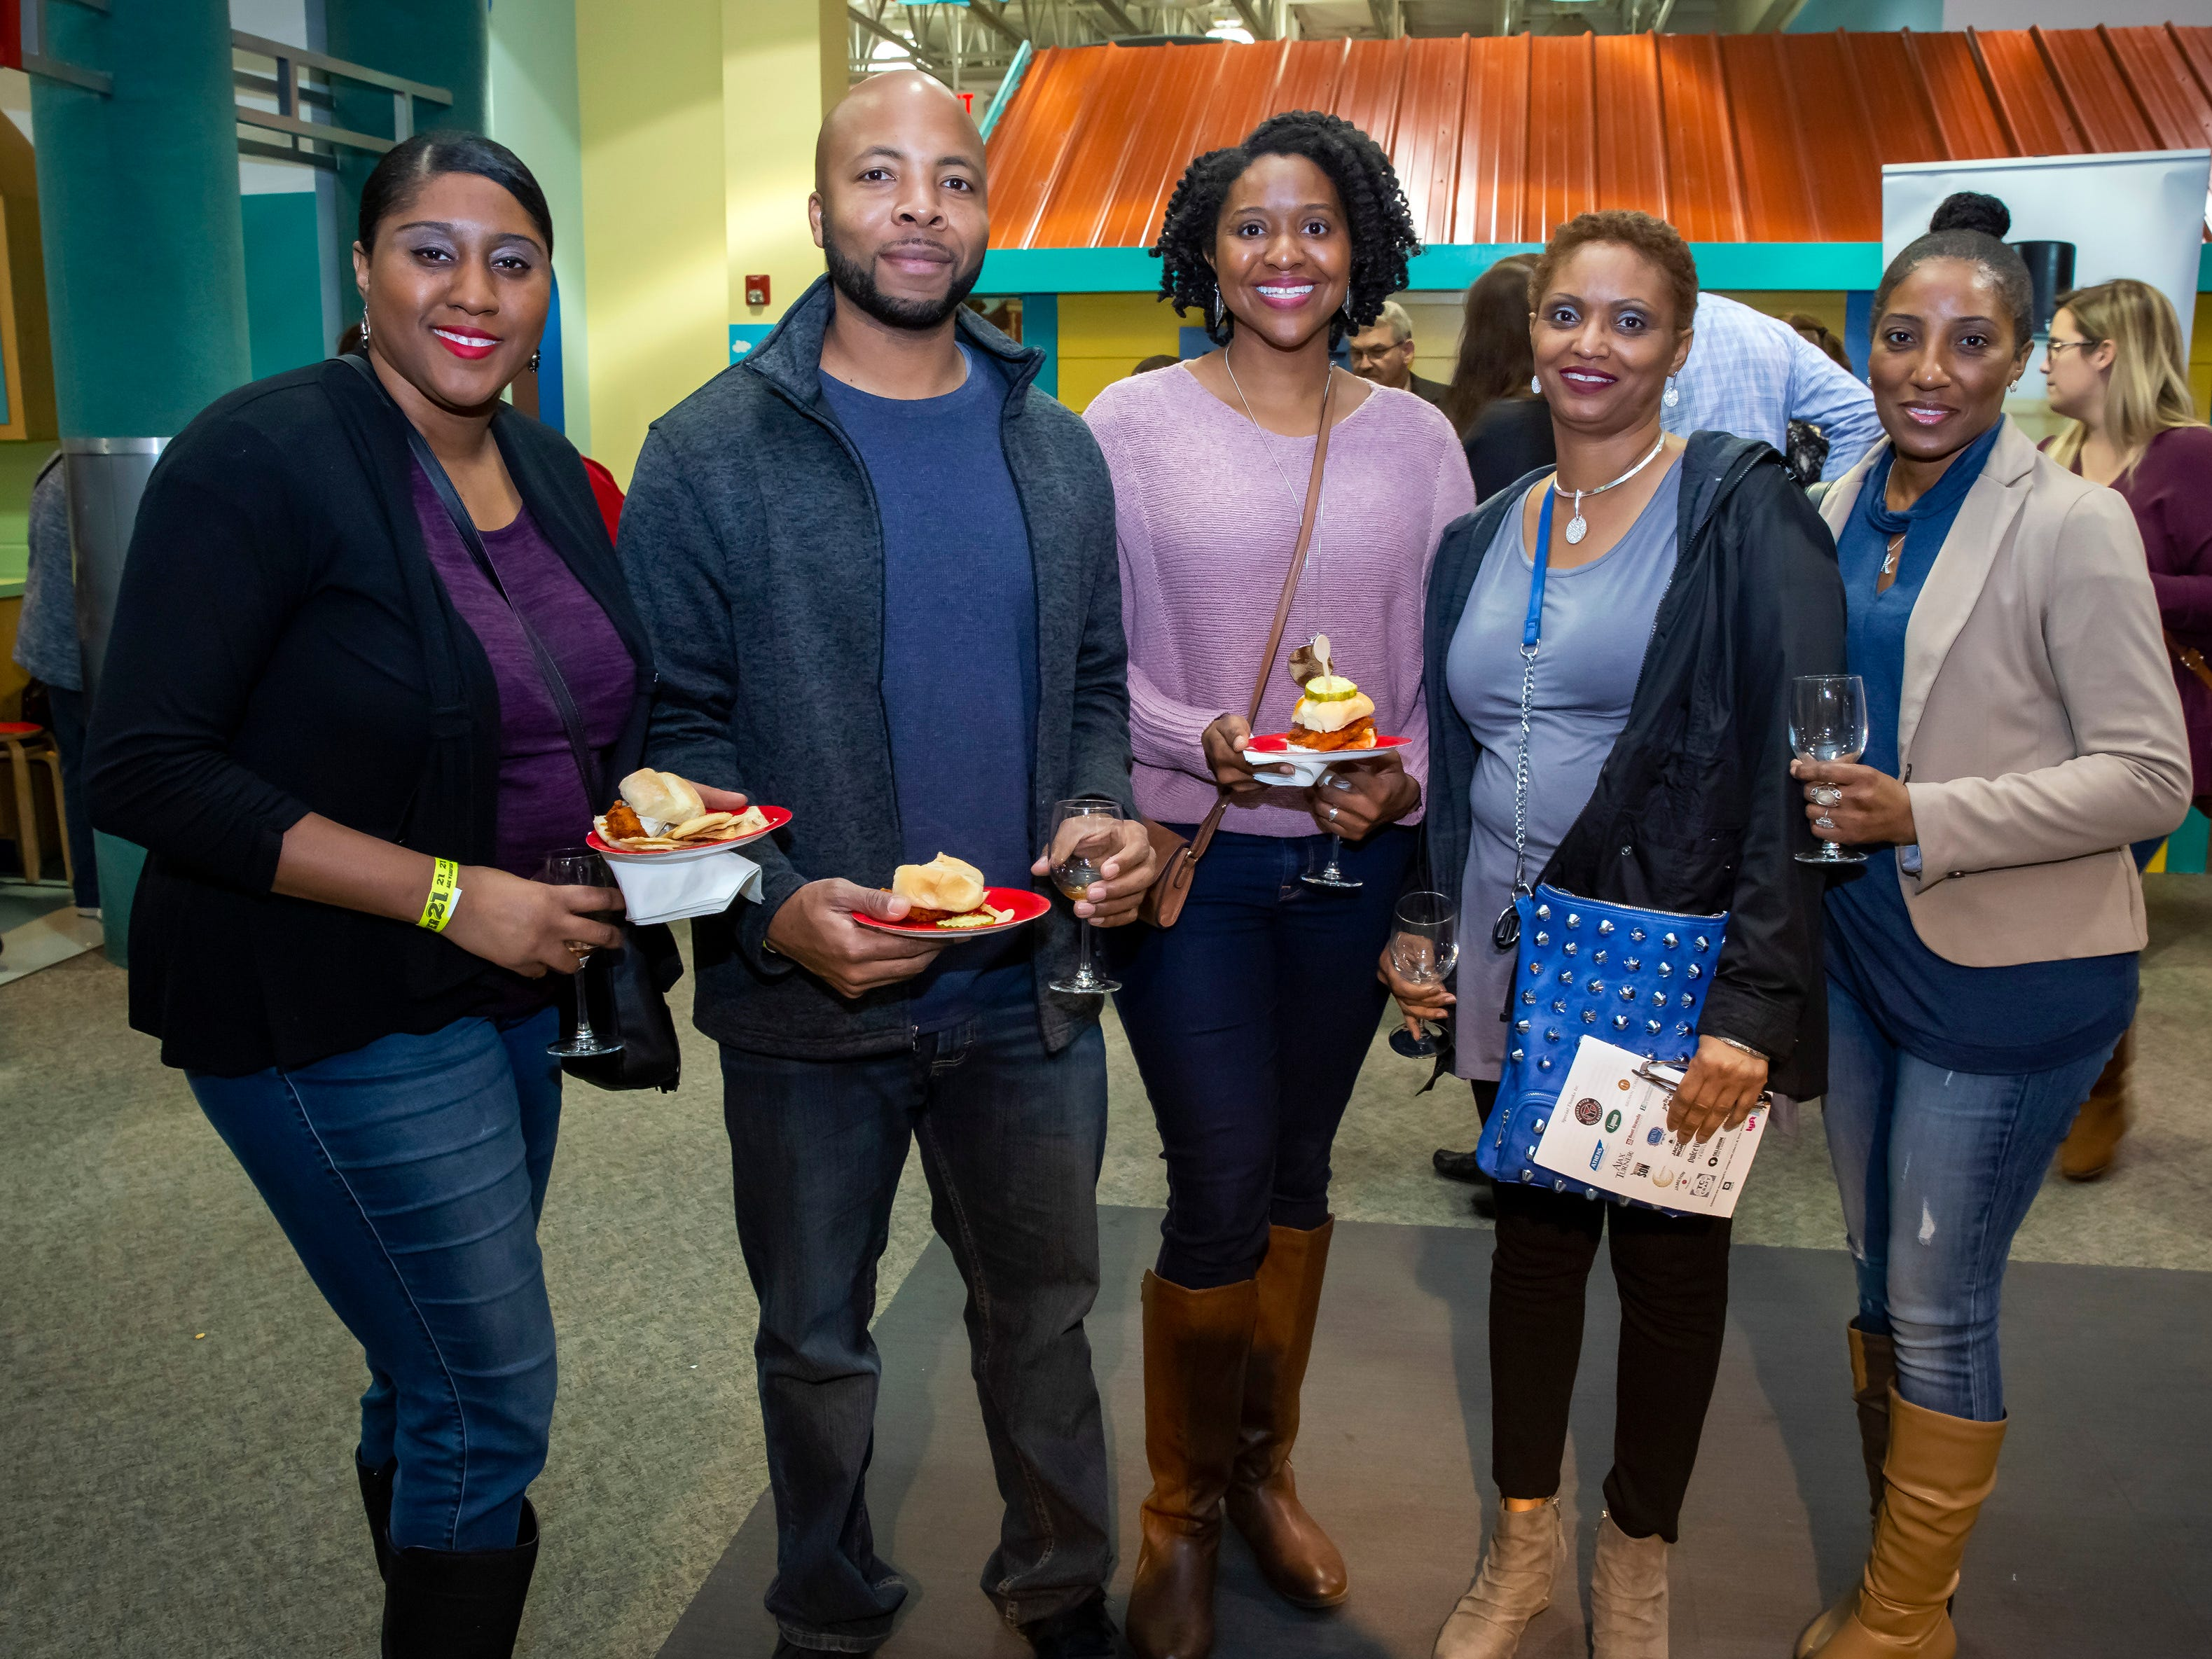 Kay Williams, Anthony McAdoo, Denise Holman, Z. Phillips and T. Johnson at the 6th annual Wine and Whiskey at the Wetlands event held at the Discovery Center.